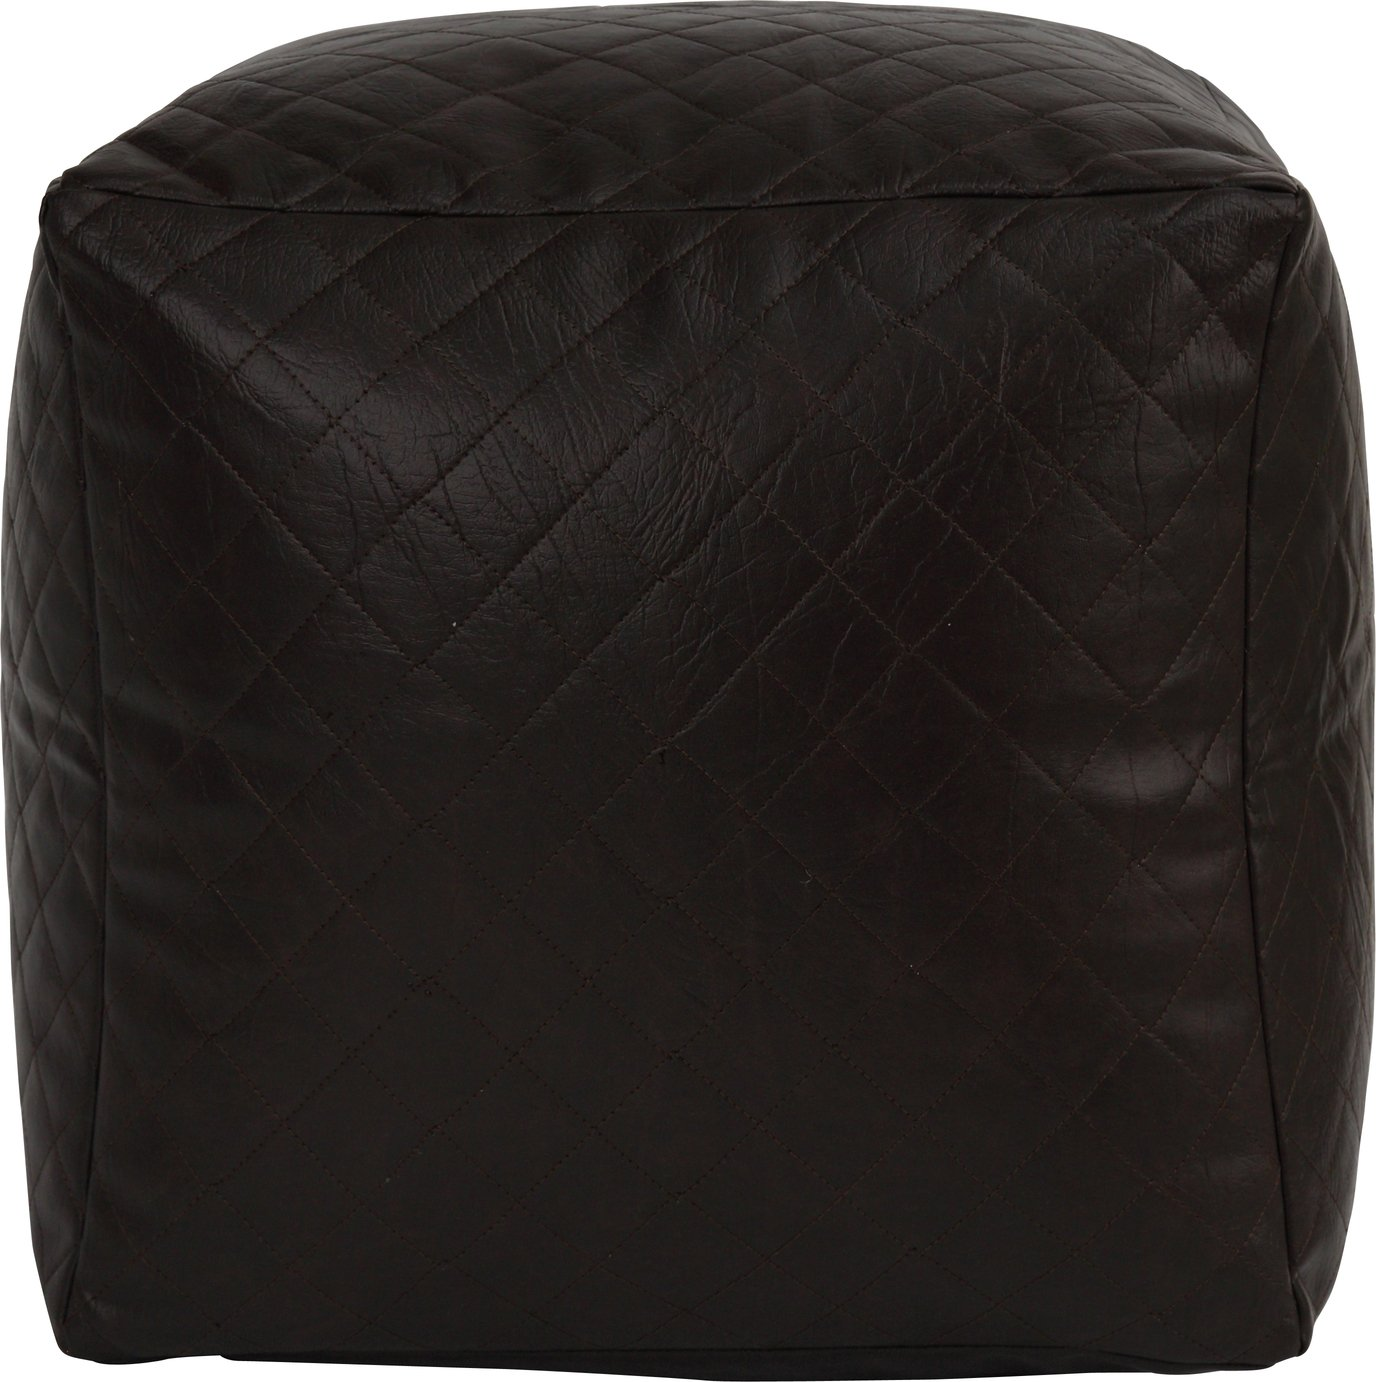 Argos Home Quilted Cube Beanbag - Chocolate